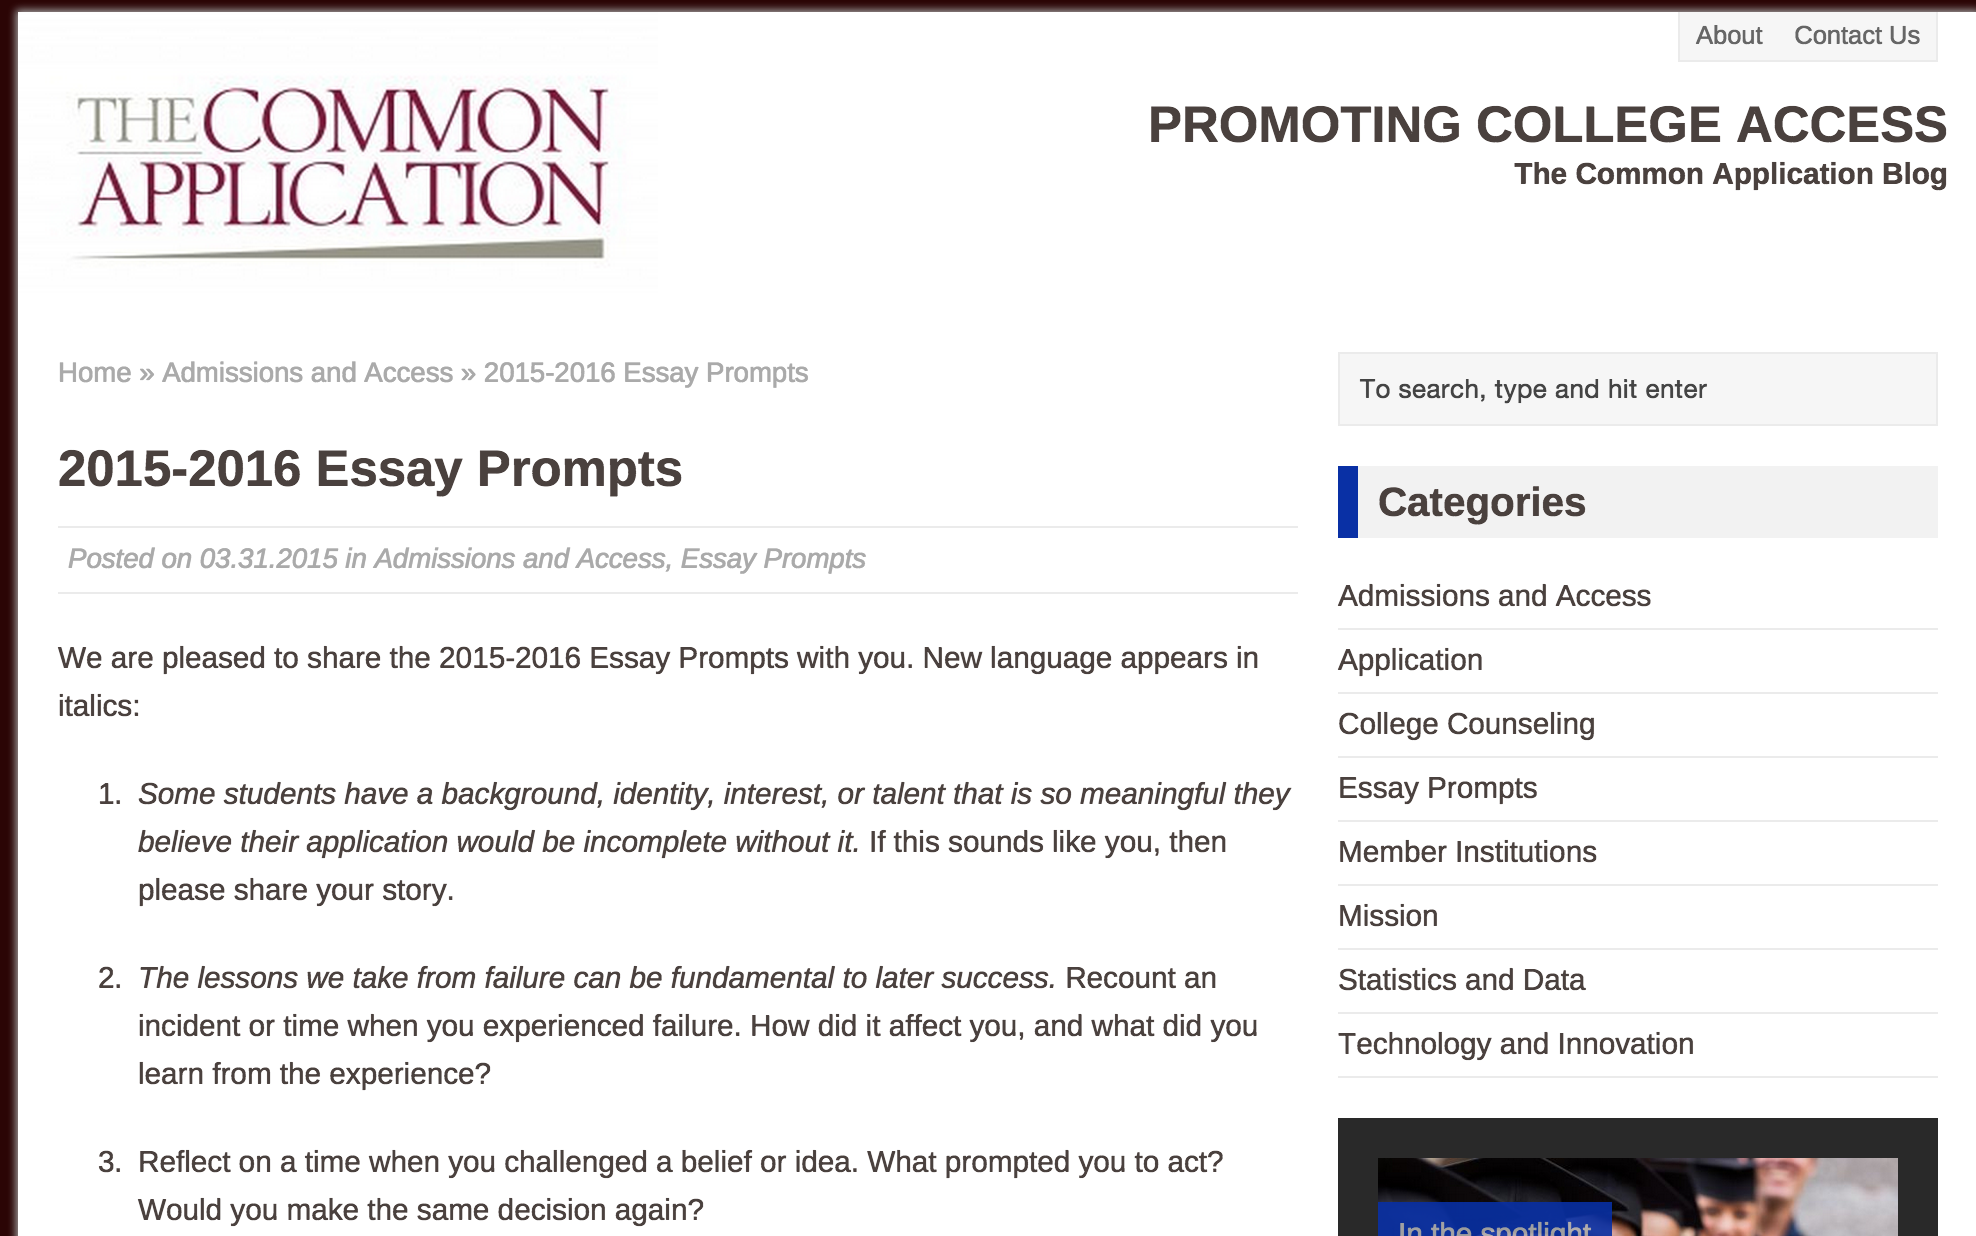 001 Essay Example Screen Shot At Pm Common App Staggering Questions 2020 2017-18 Full